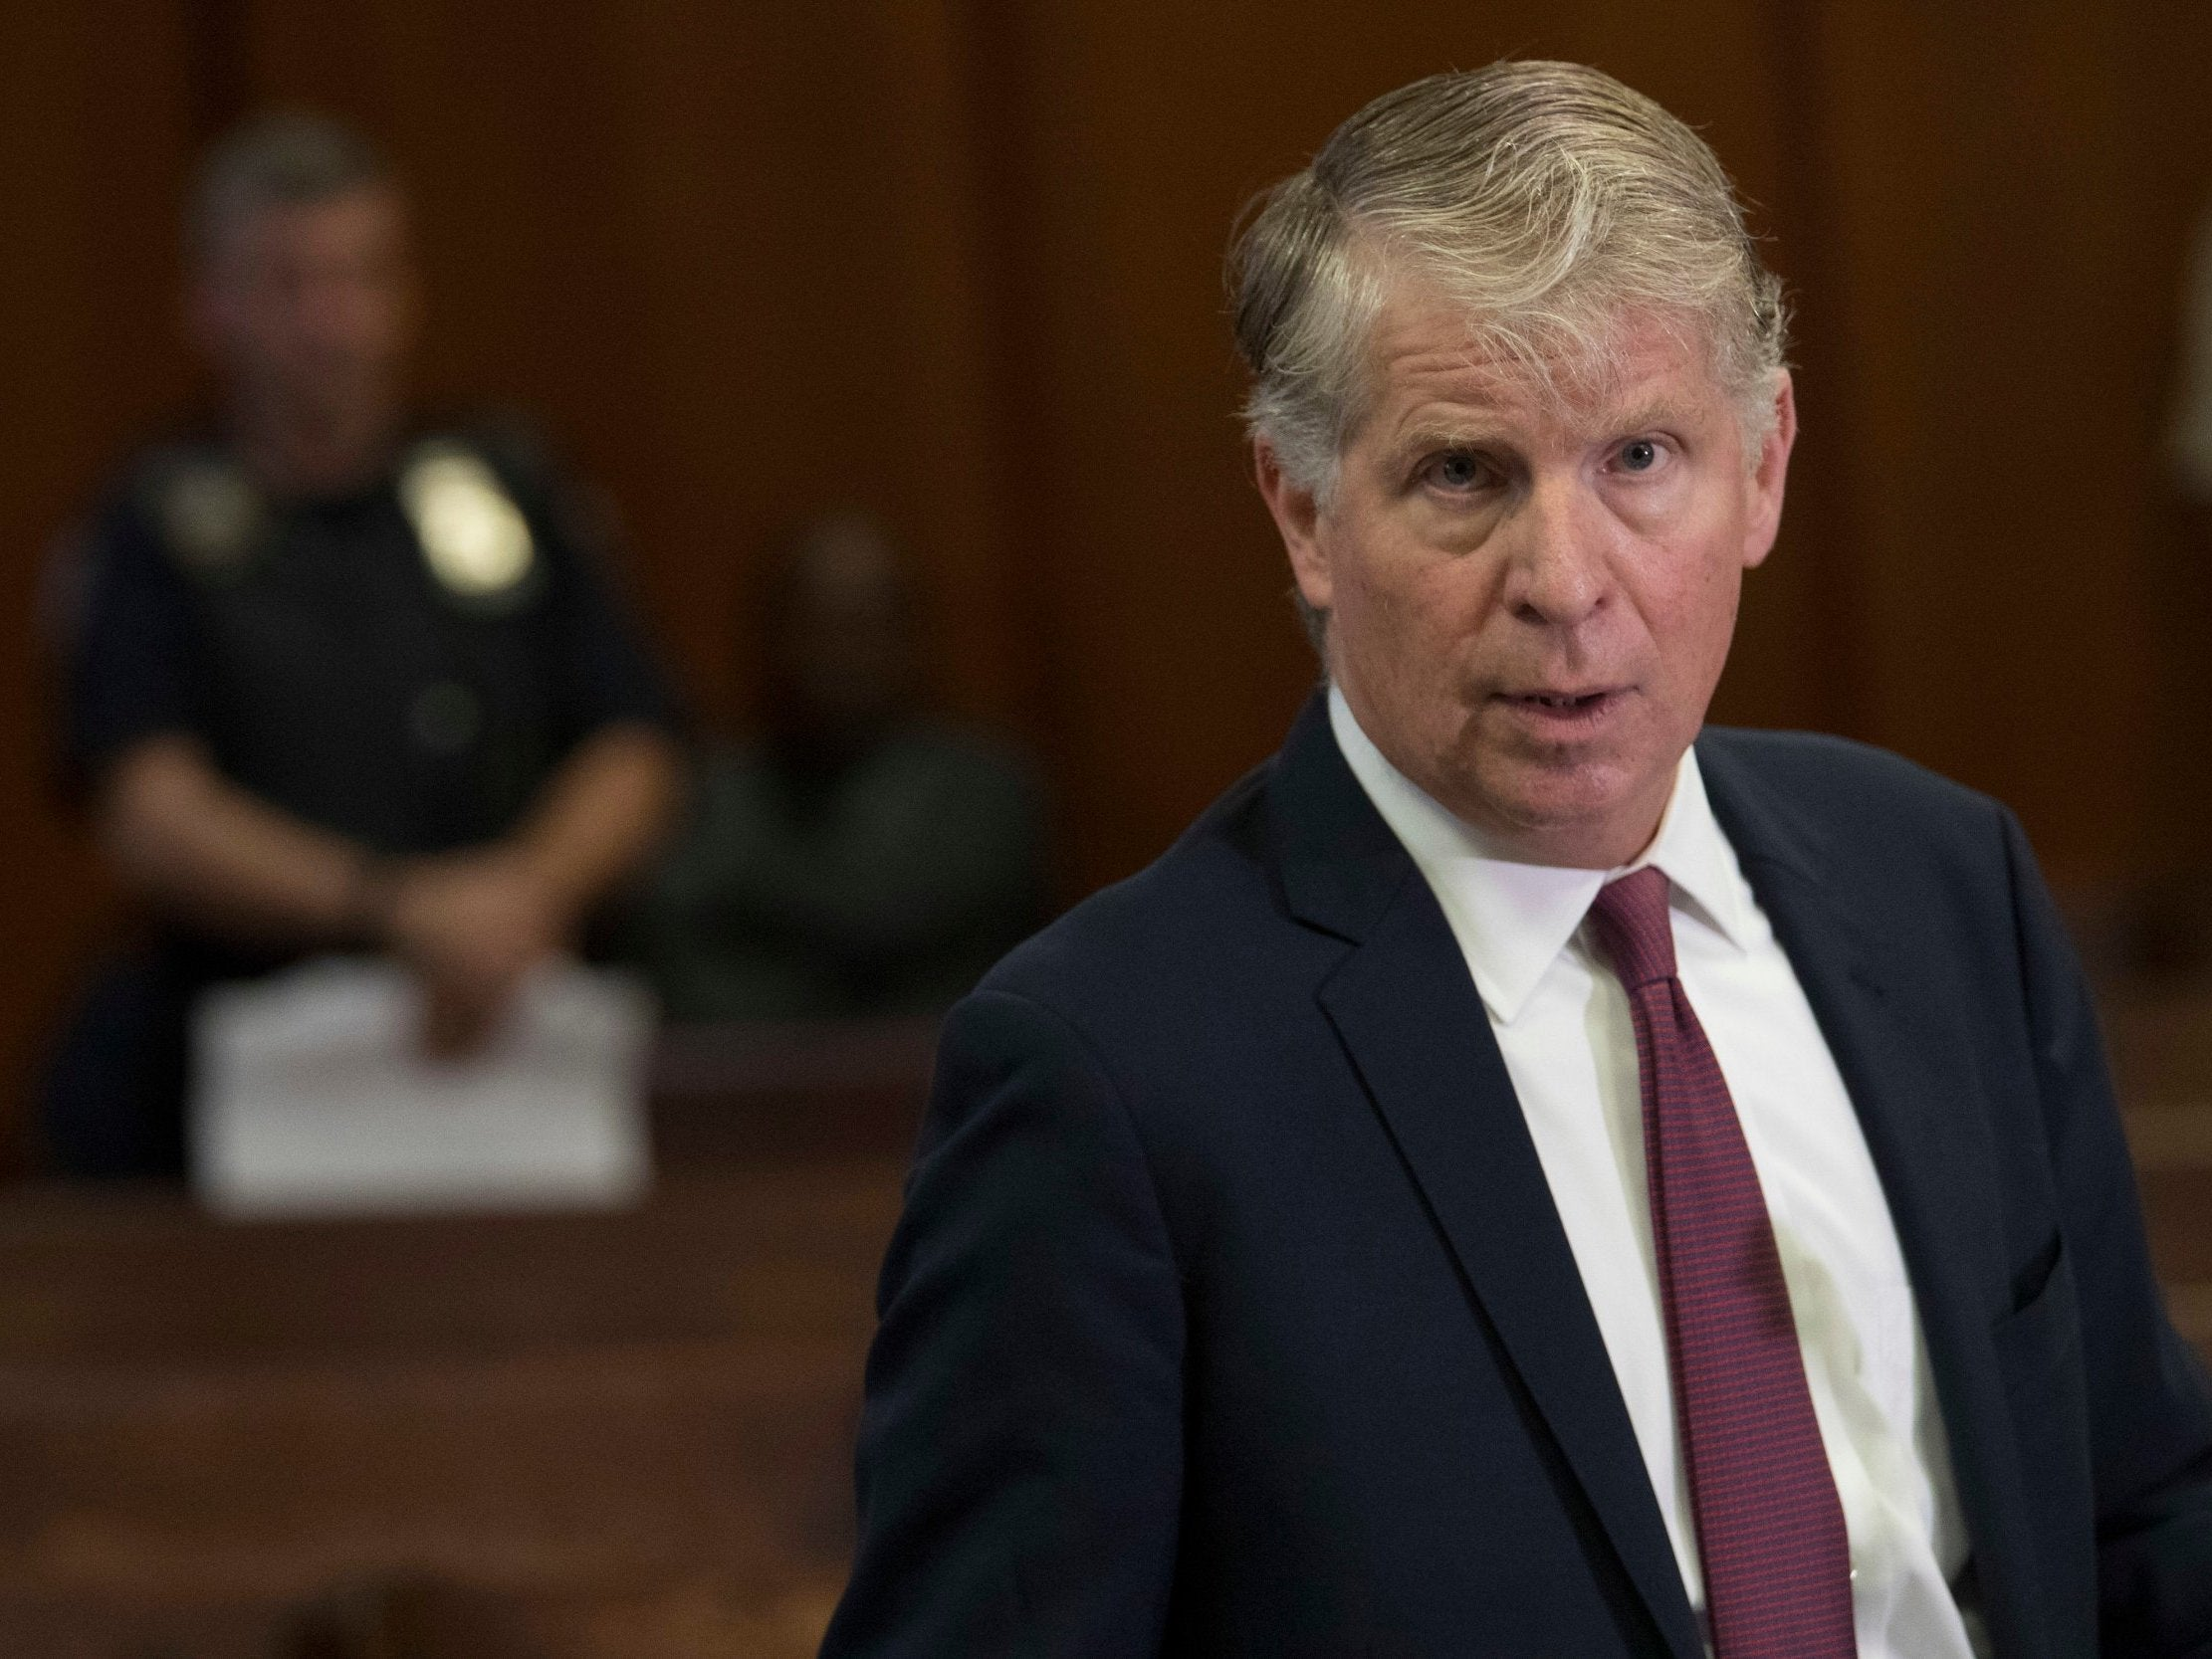 Sexual assault evidence kits funded by New York prosecutor led to over 1,000 arrests